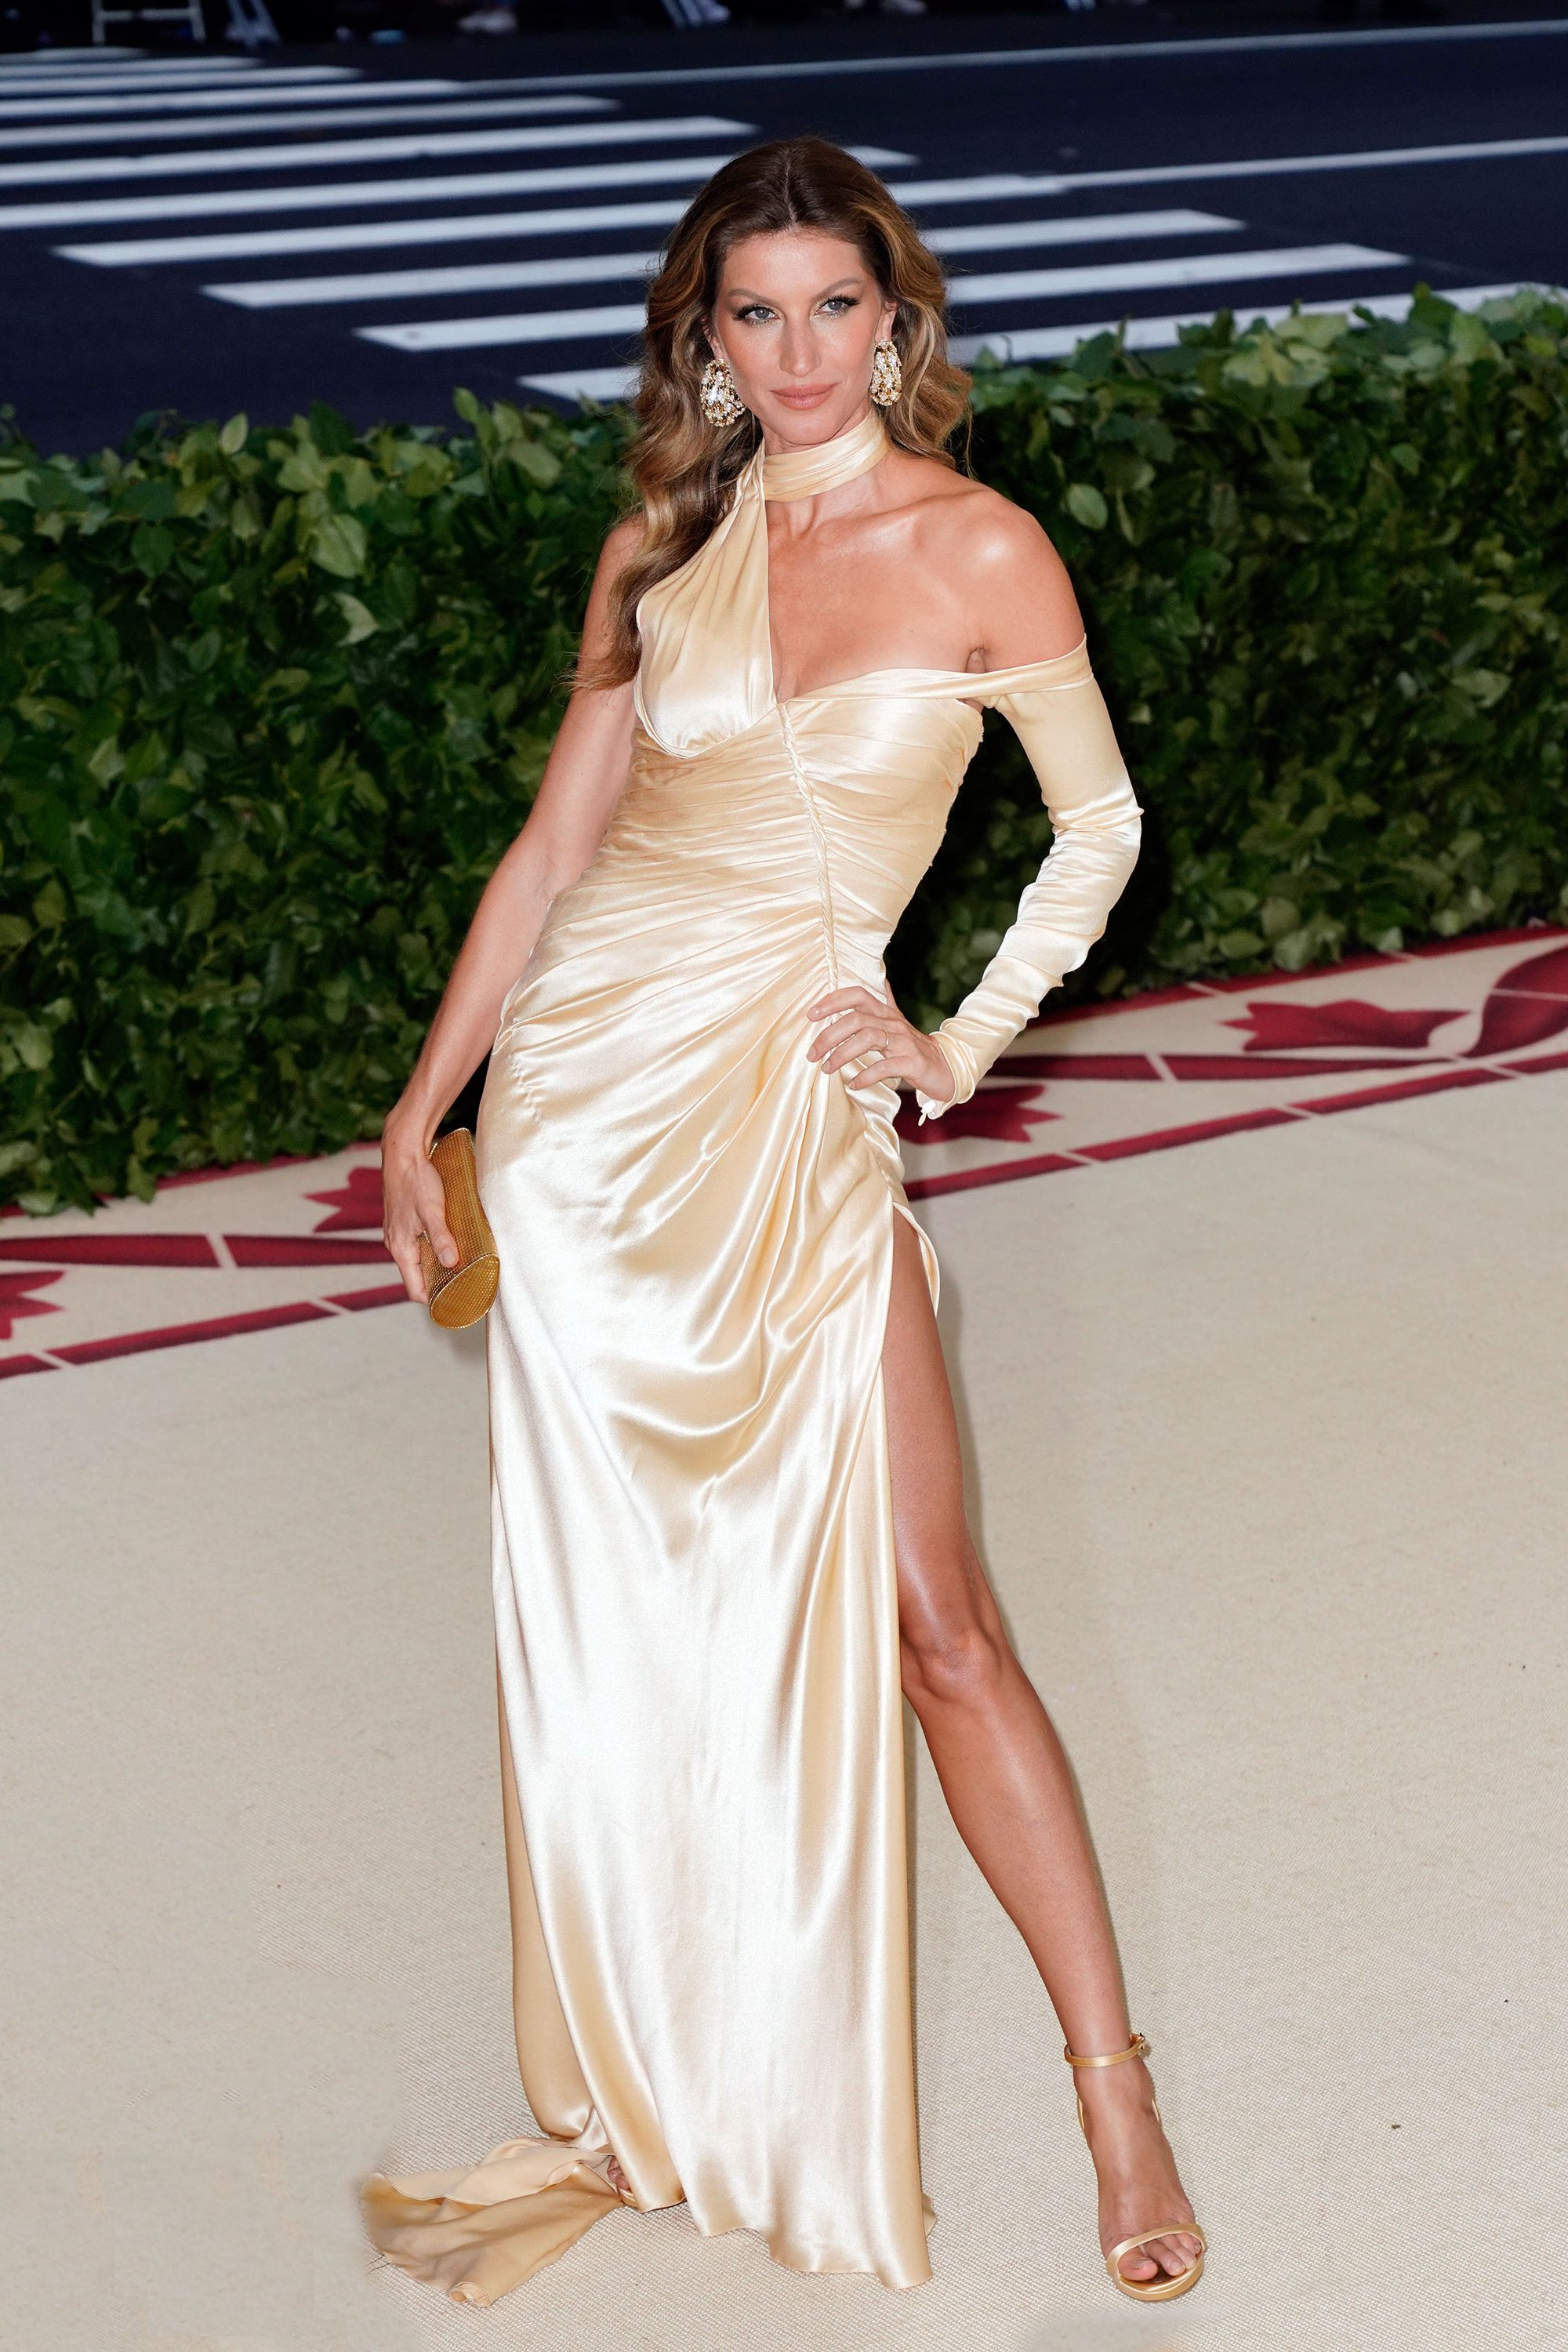 """Gisele Bundchen Giselle told W that while sticks to plant-based eating , """"I look at whole plant based foods, that's the foundation of the diet, mostly green vegetables, green vegetables are the highlight of that diet."""" She stays away from refined, processed foods, too: """"I believe that if it's not found in nature, we shouldn't really be messing with it."""""""